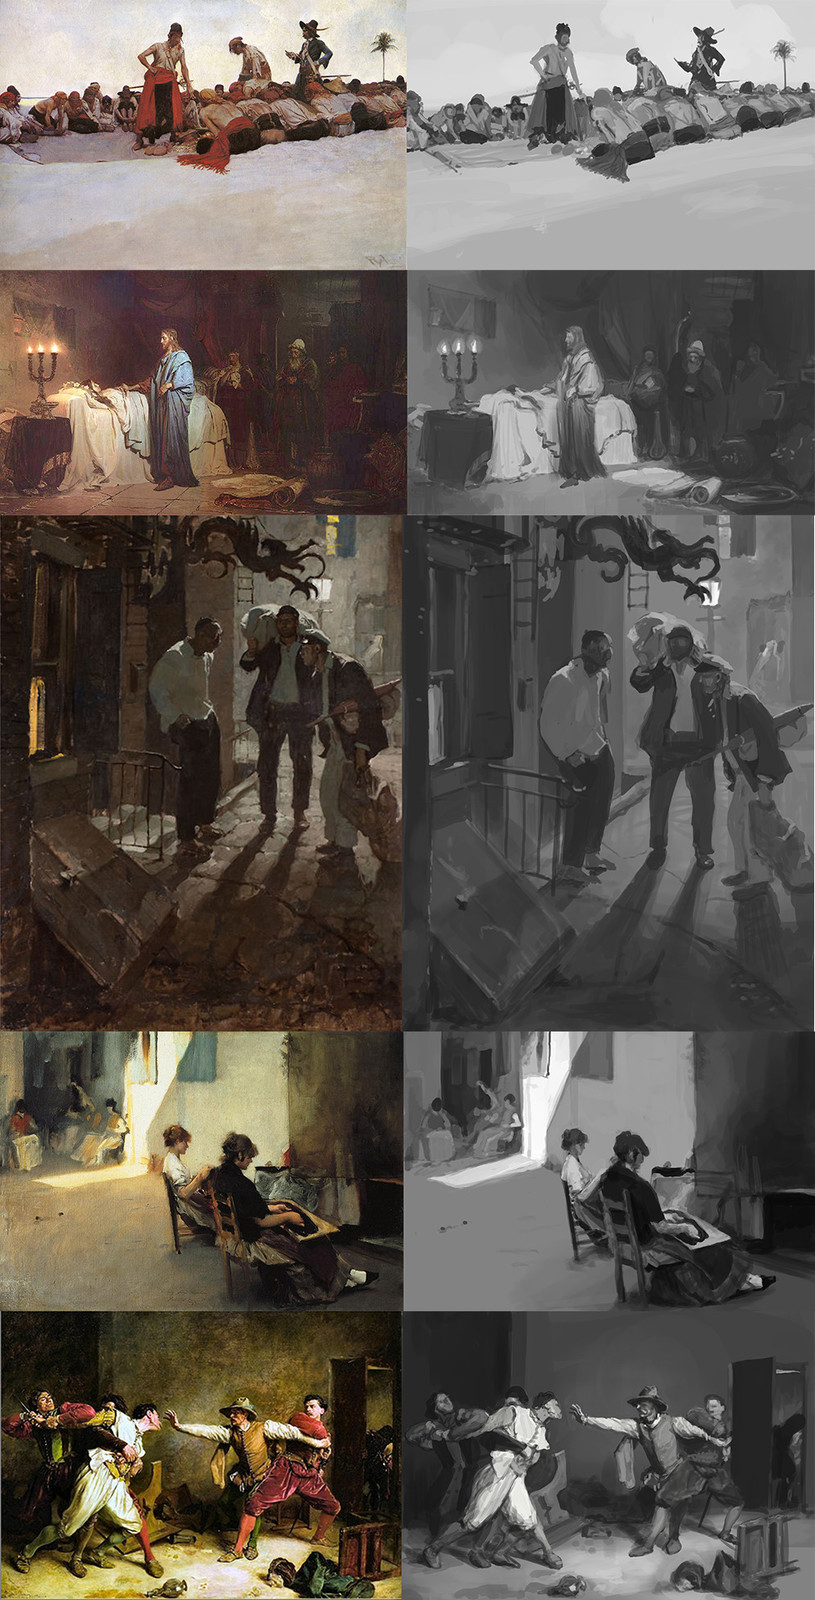 Value studies from references.